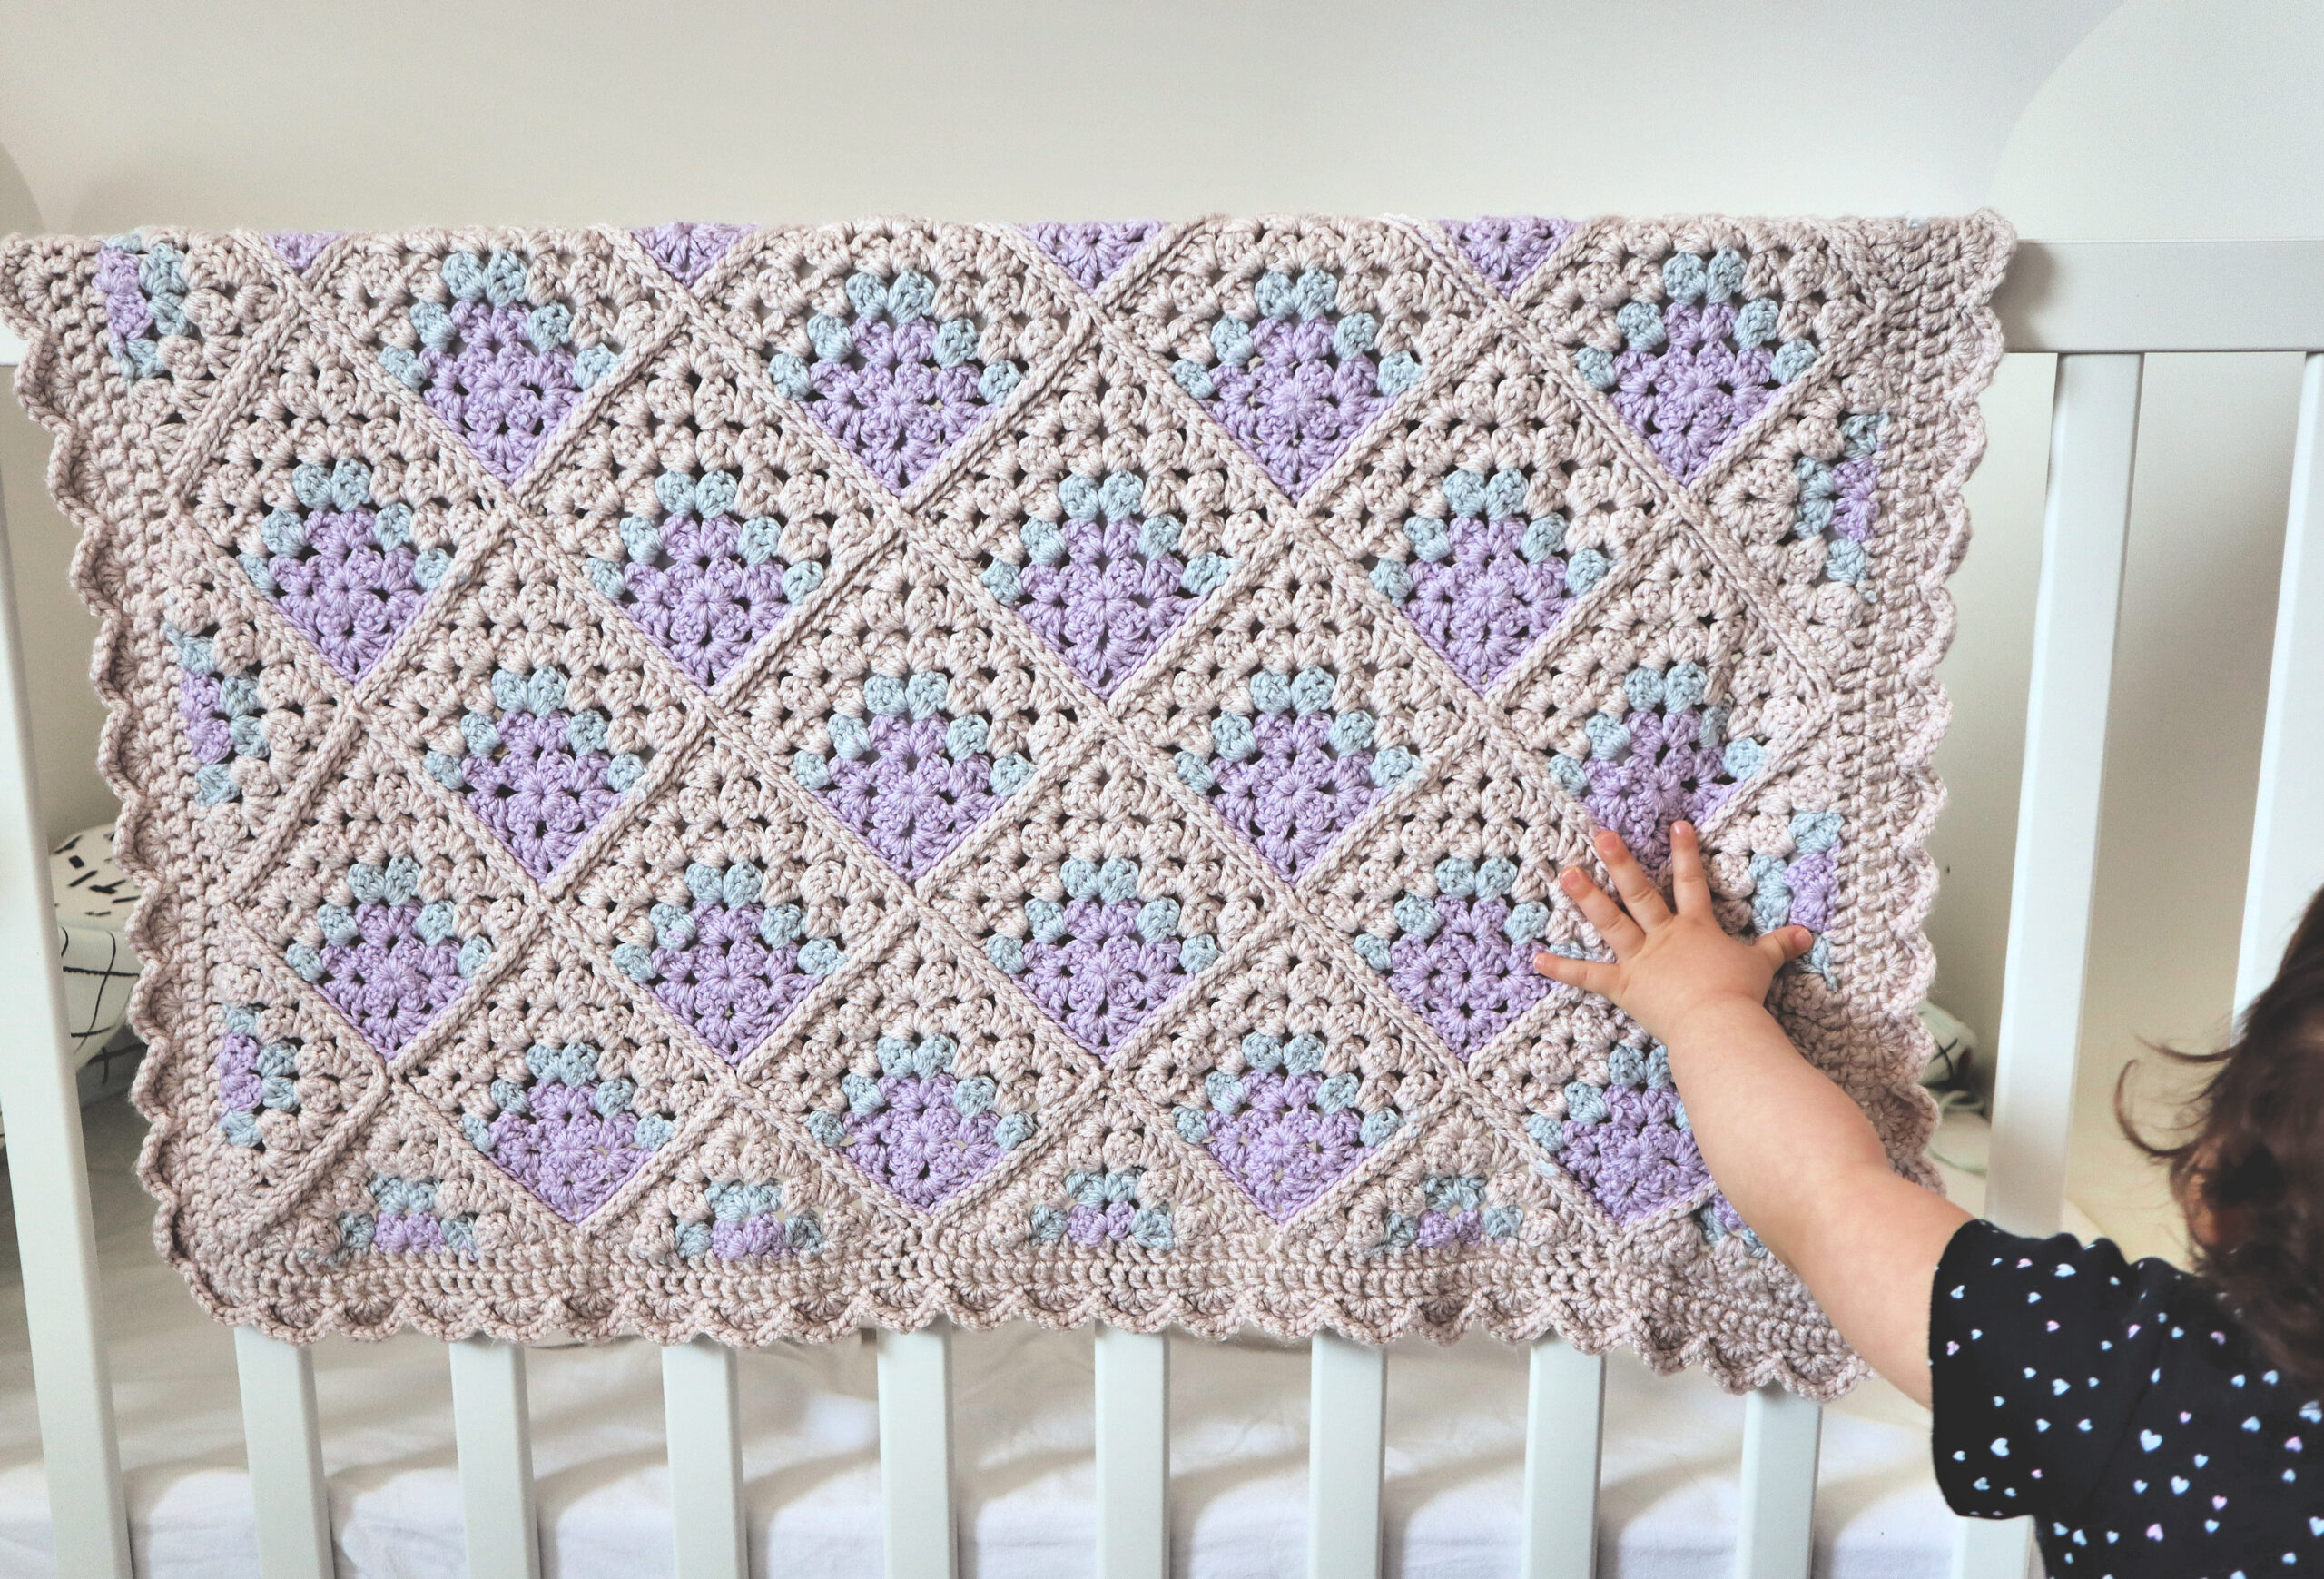 Modern Mitered Granny Square Blanket Crochet Baby Blanket Pattern The Snugglery